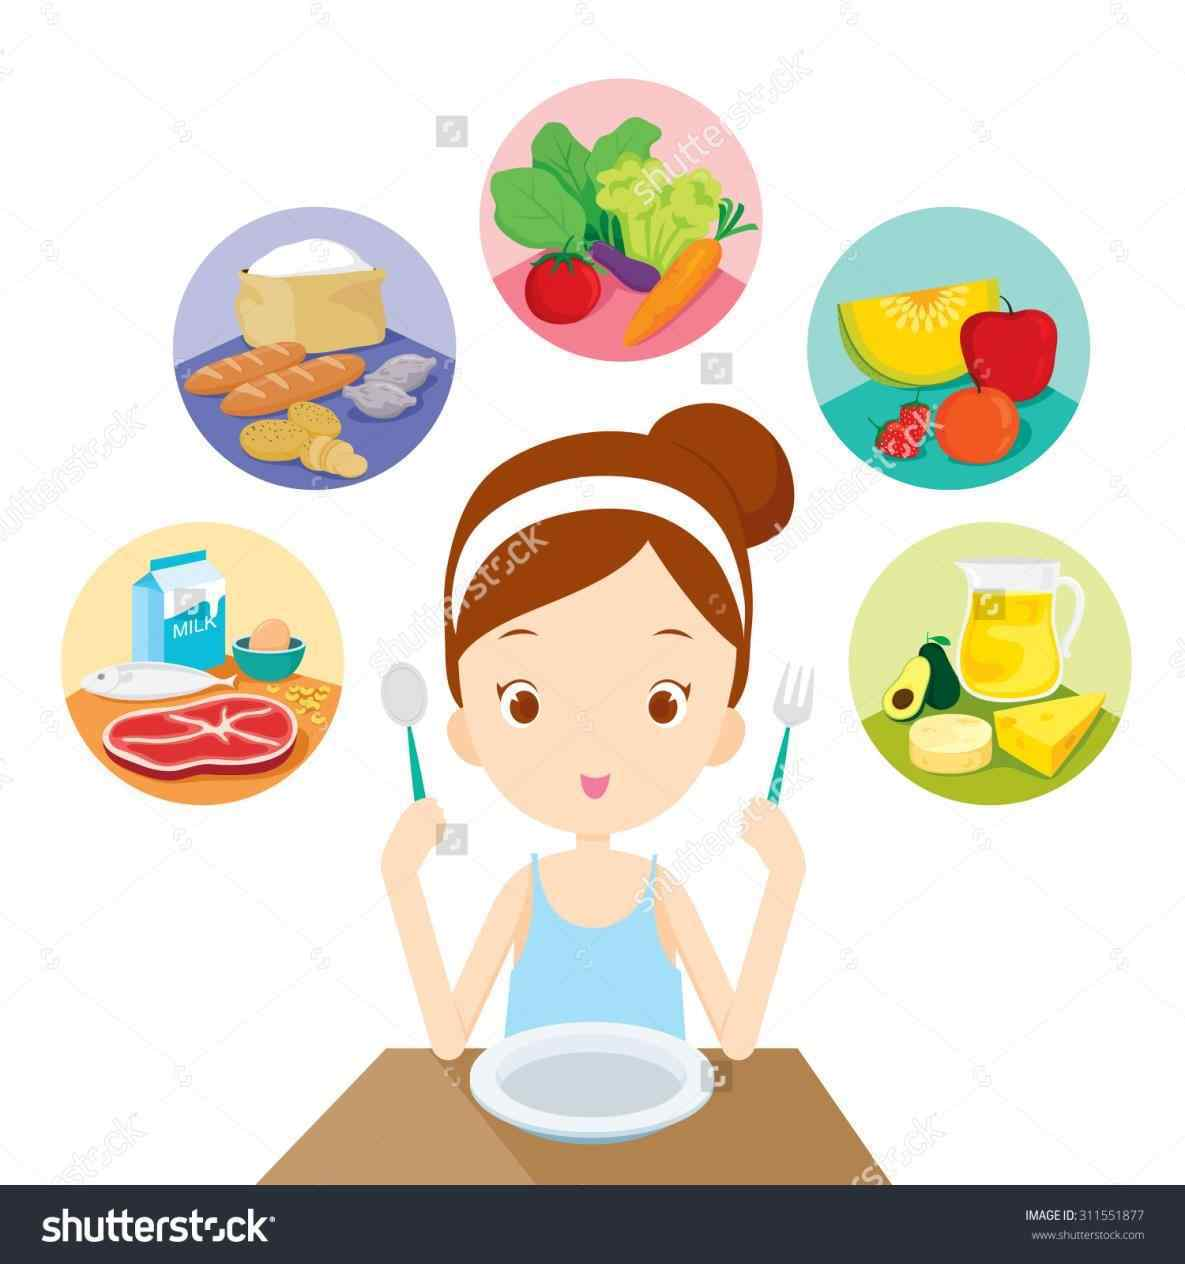 Healthy eating clipart 4 » Clipart Station.